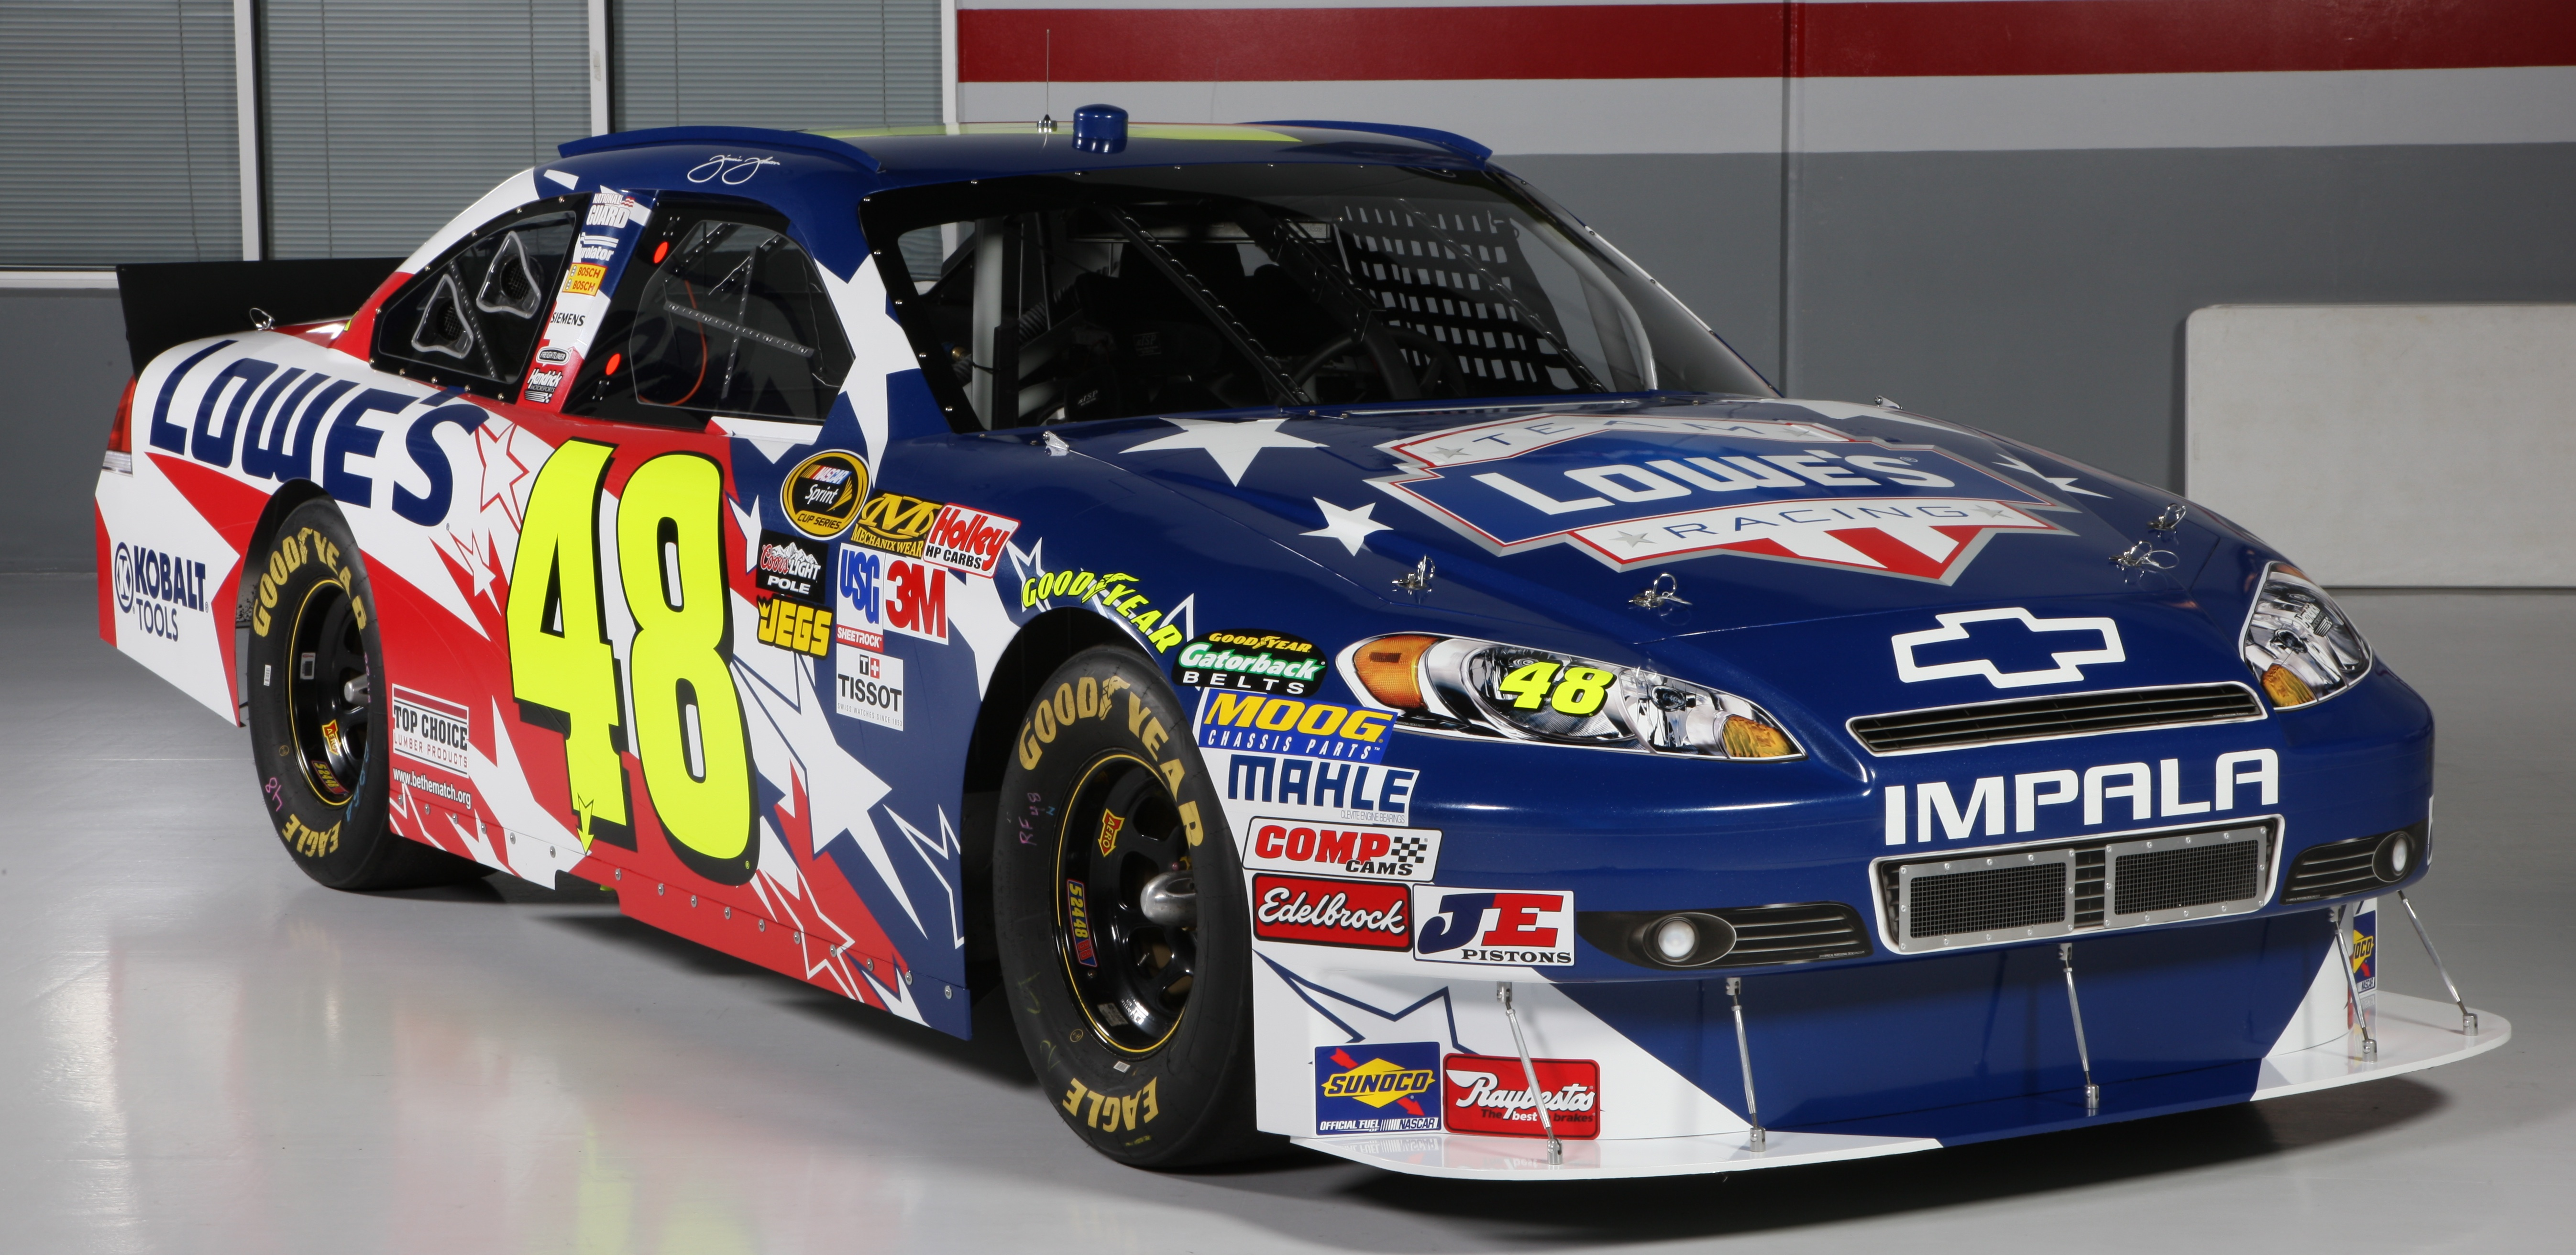 Jimmie Johnson Car Wallpaper 5386x2623